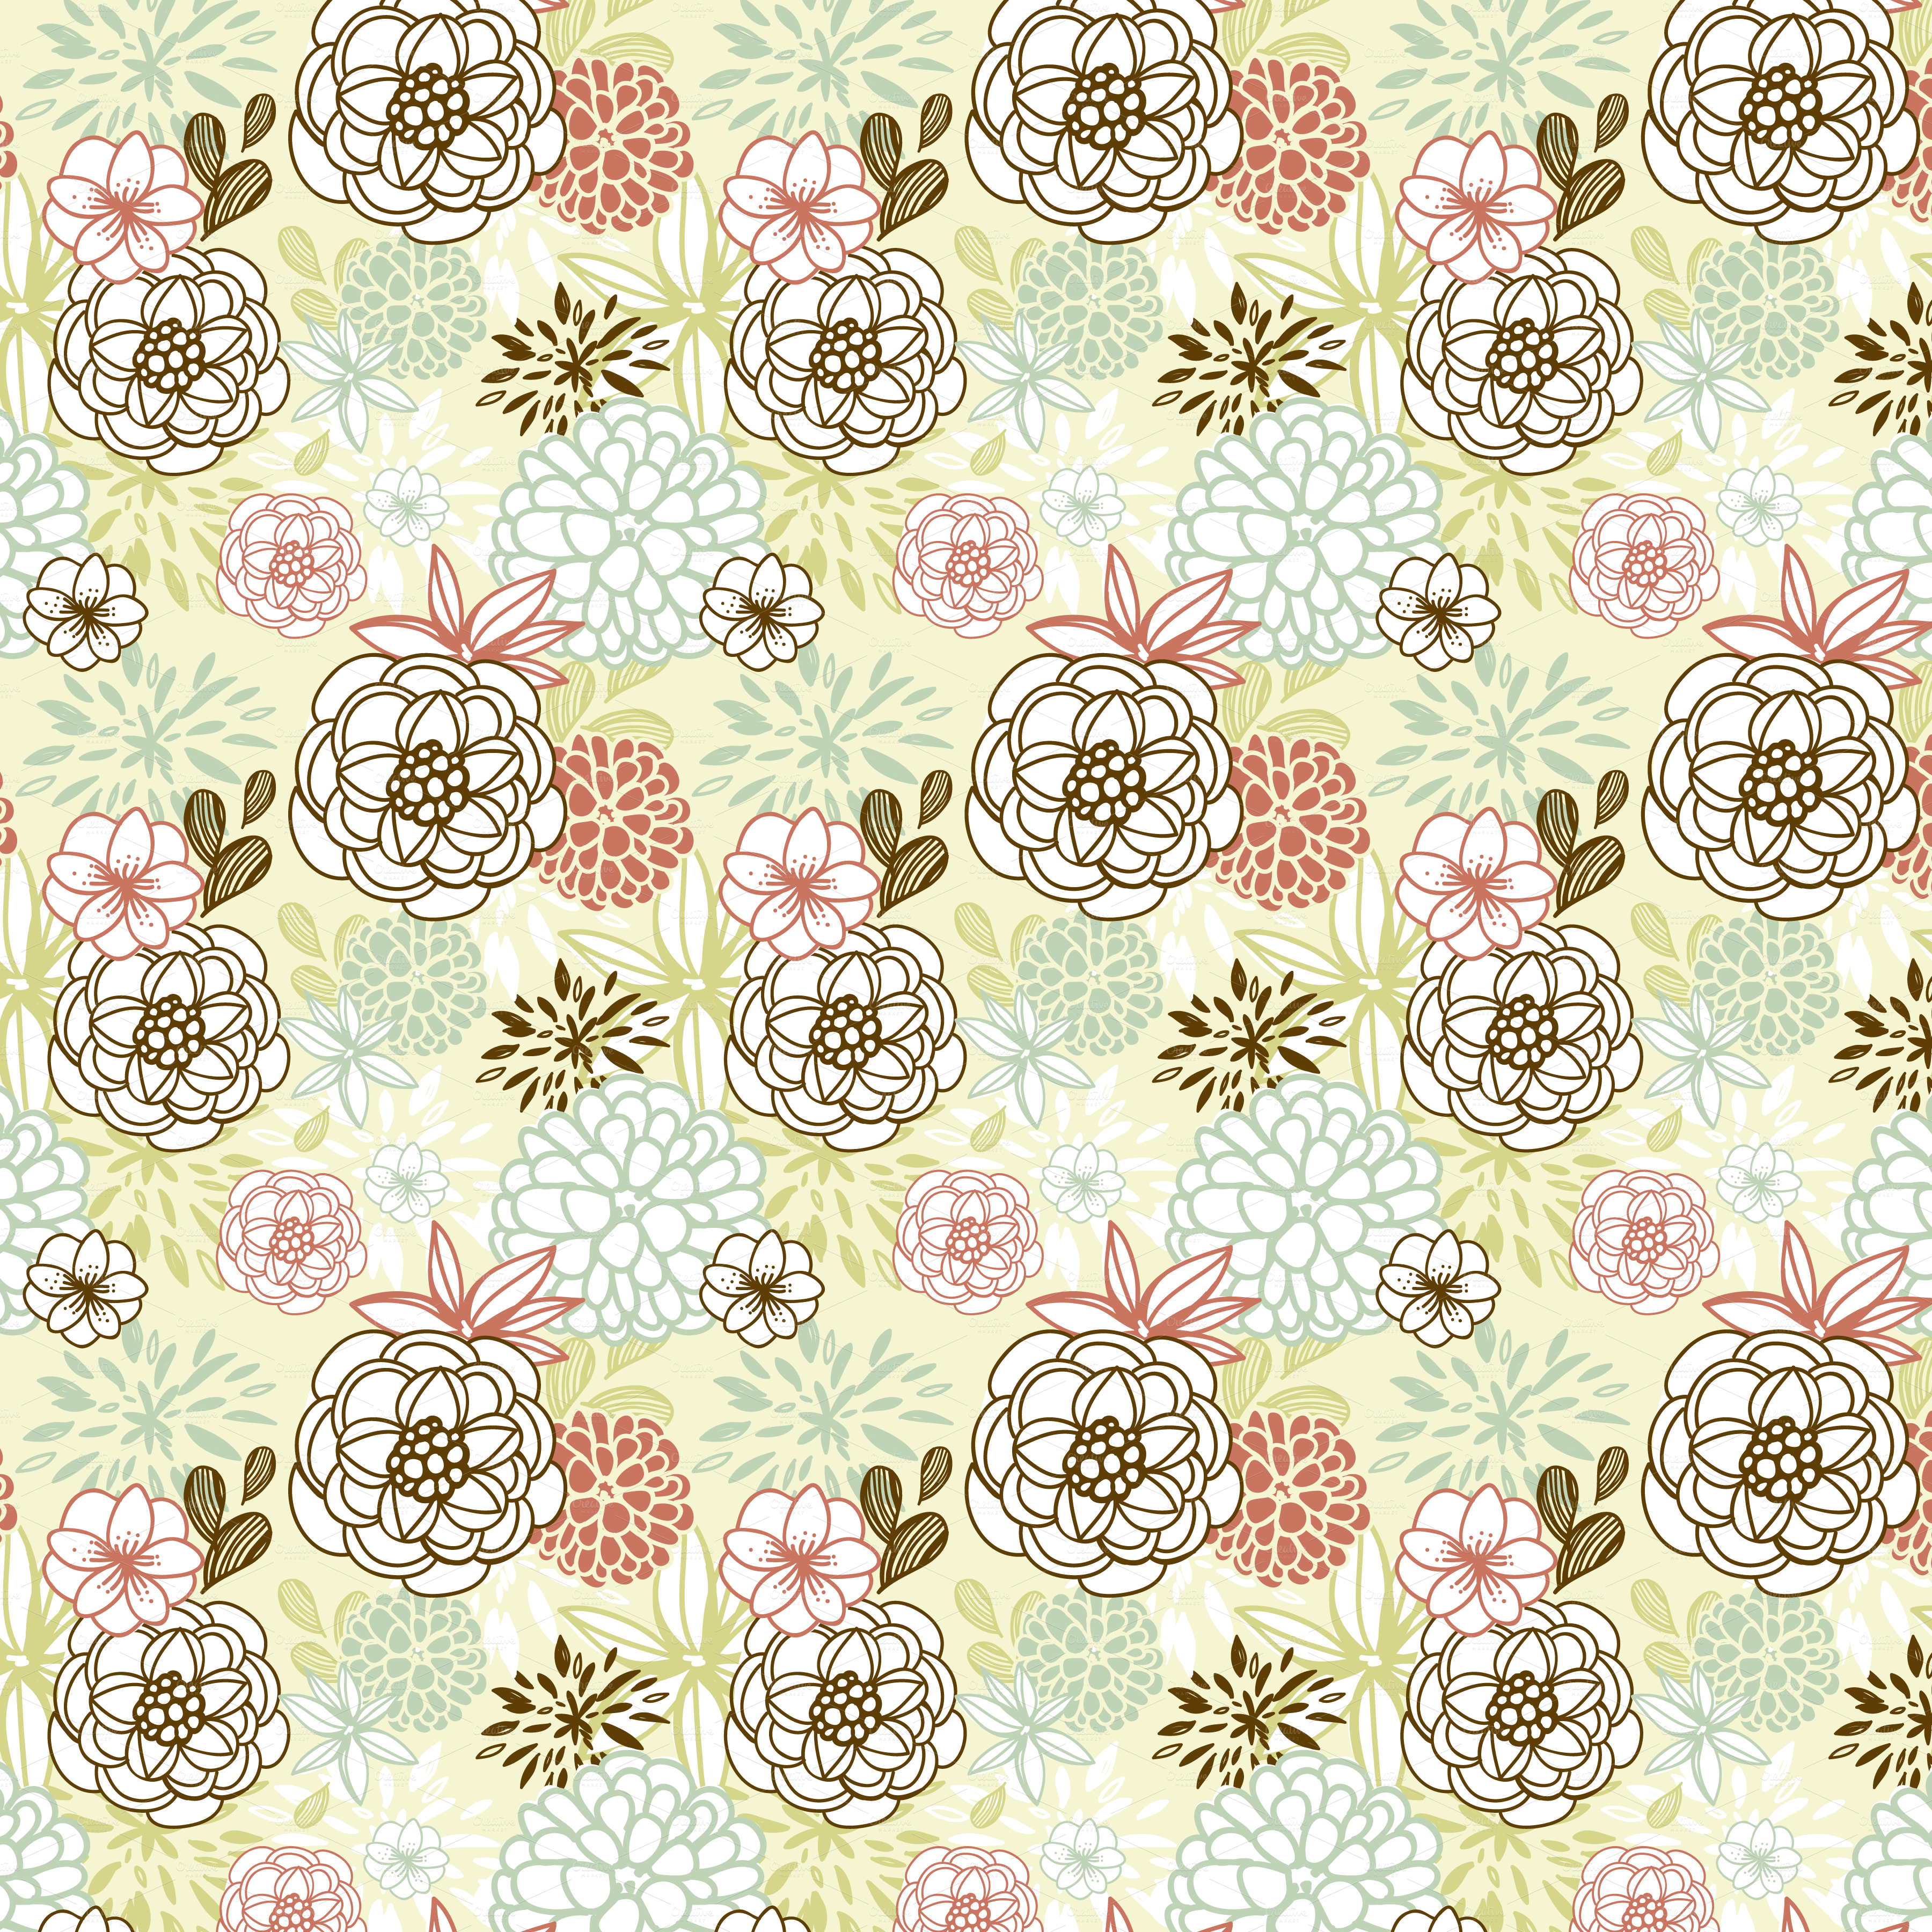 pin floral background tumblr on pinterest